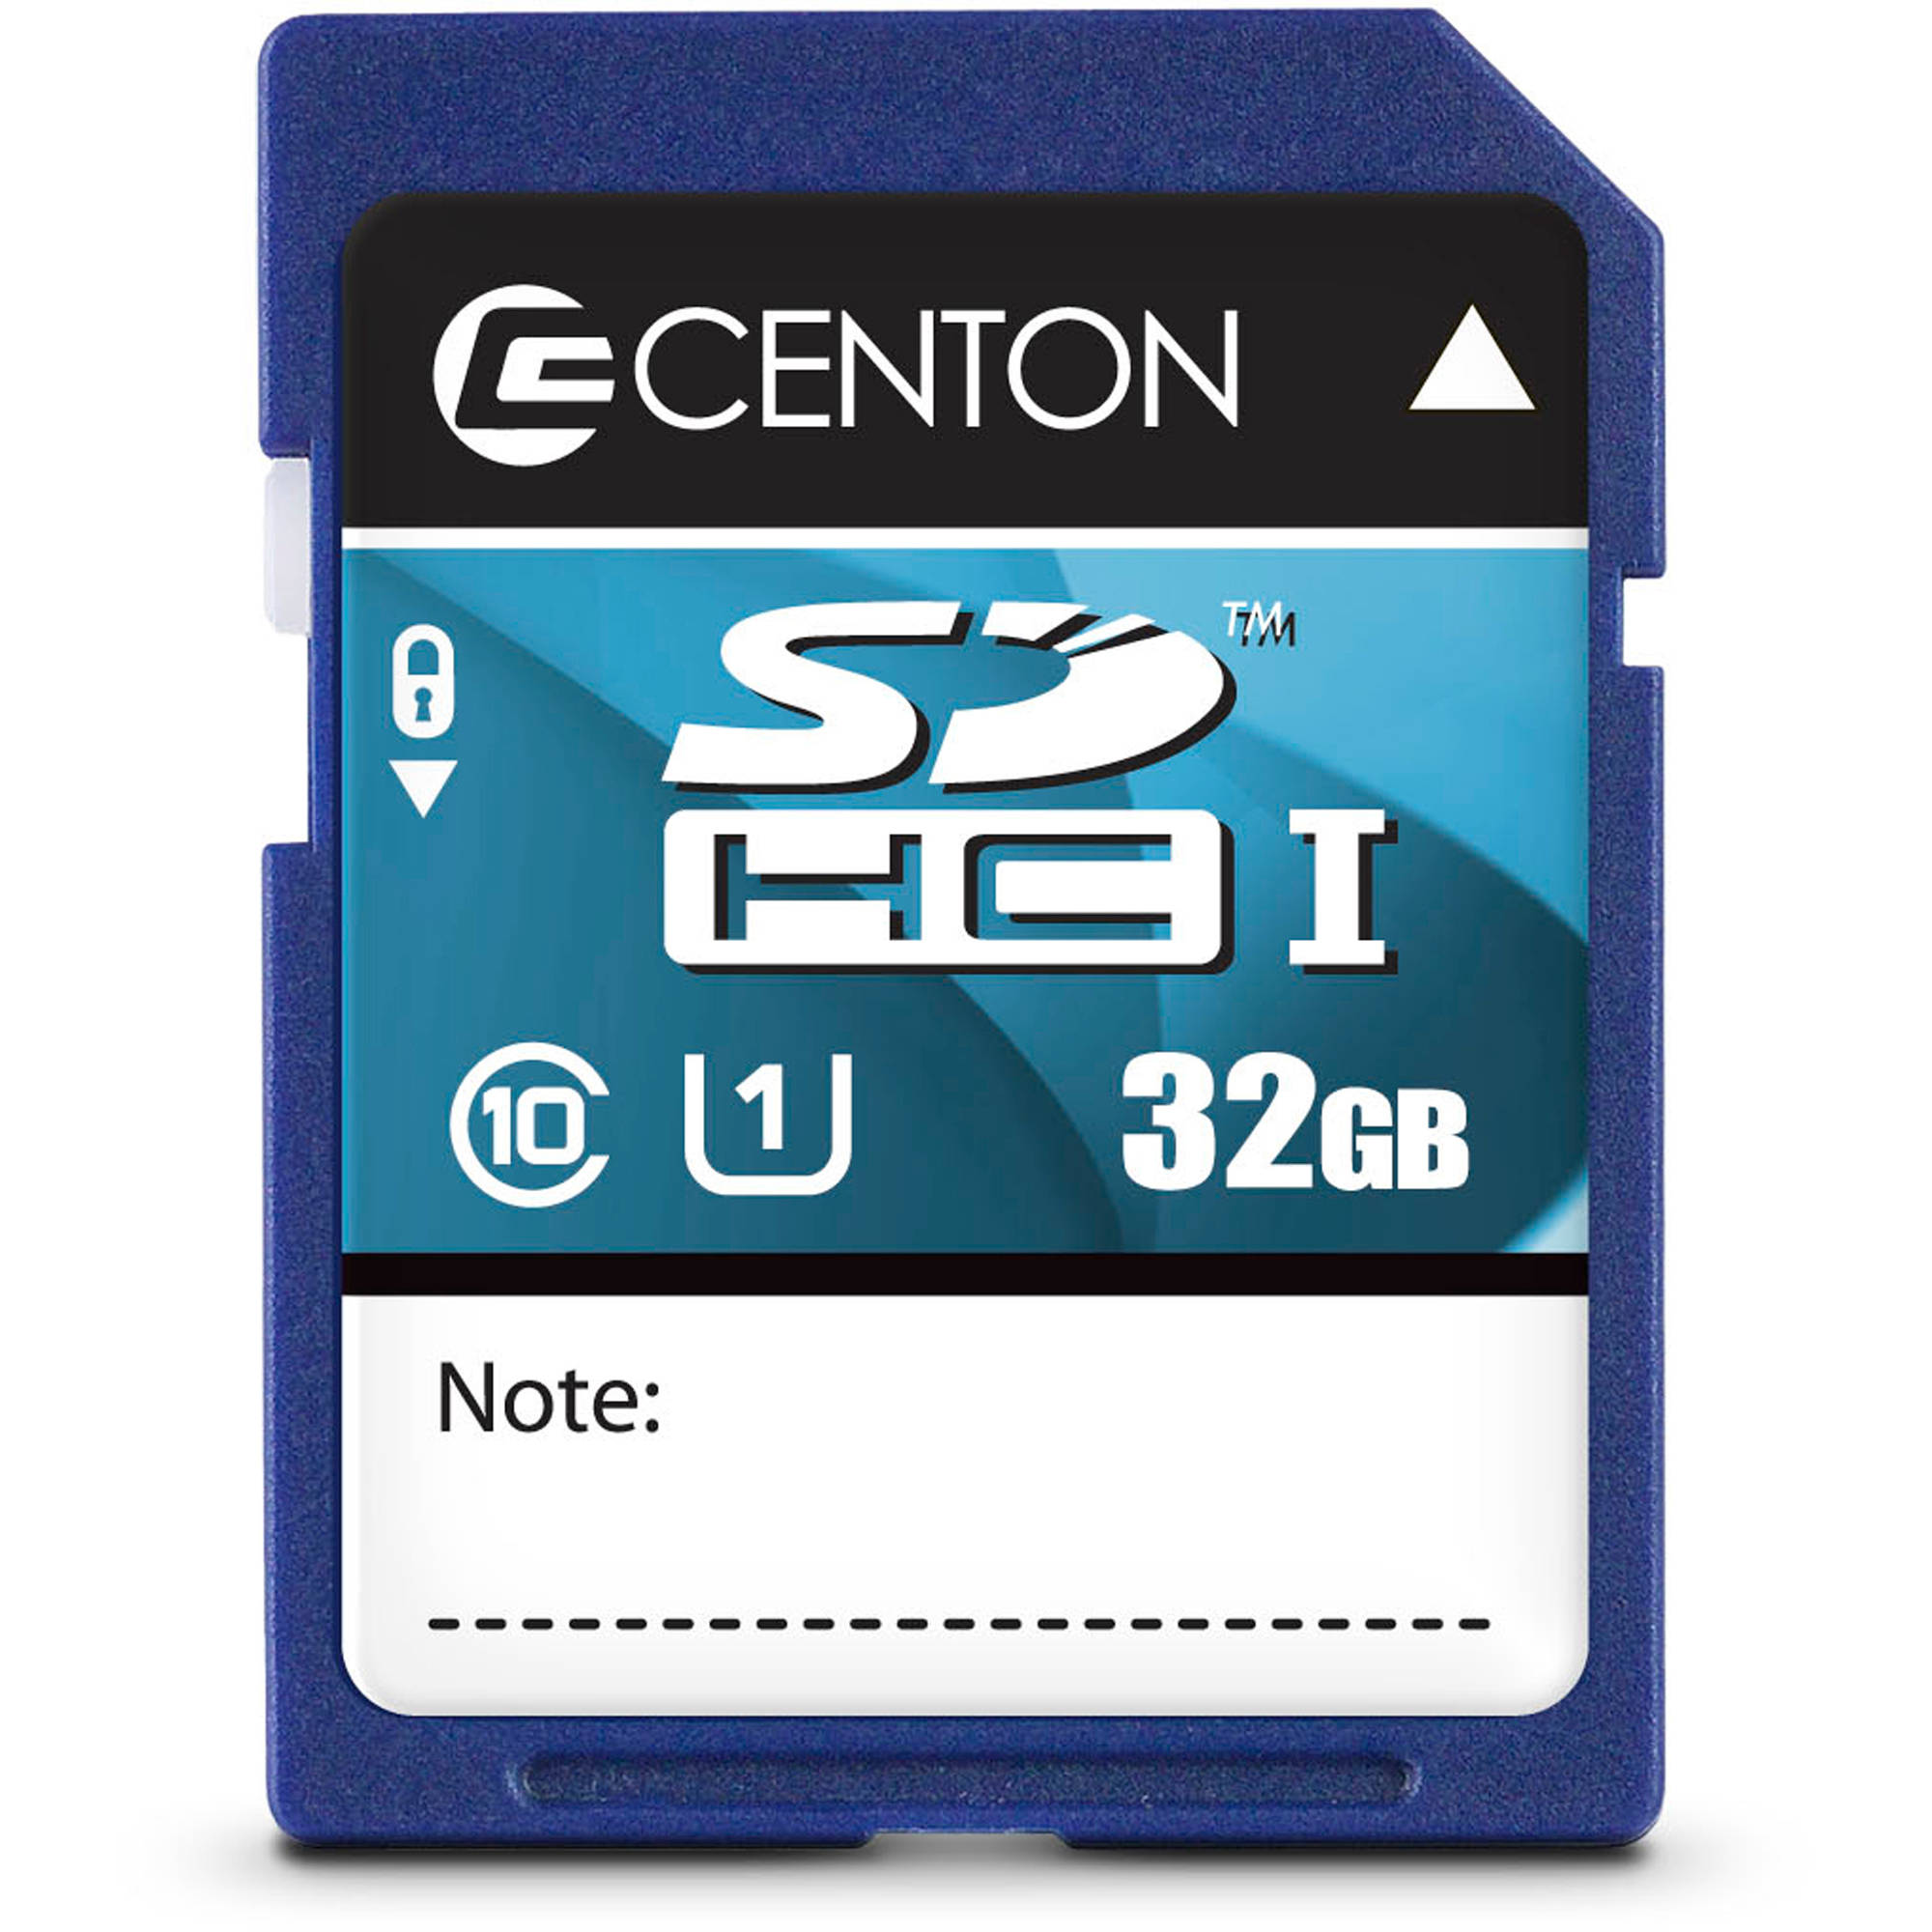 Centon 32GB SD Card